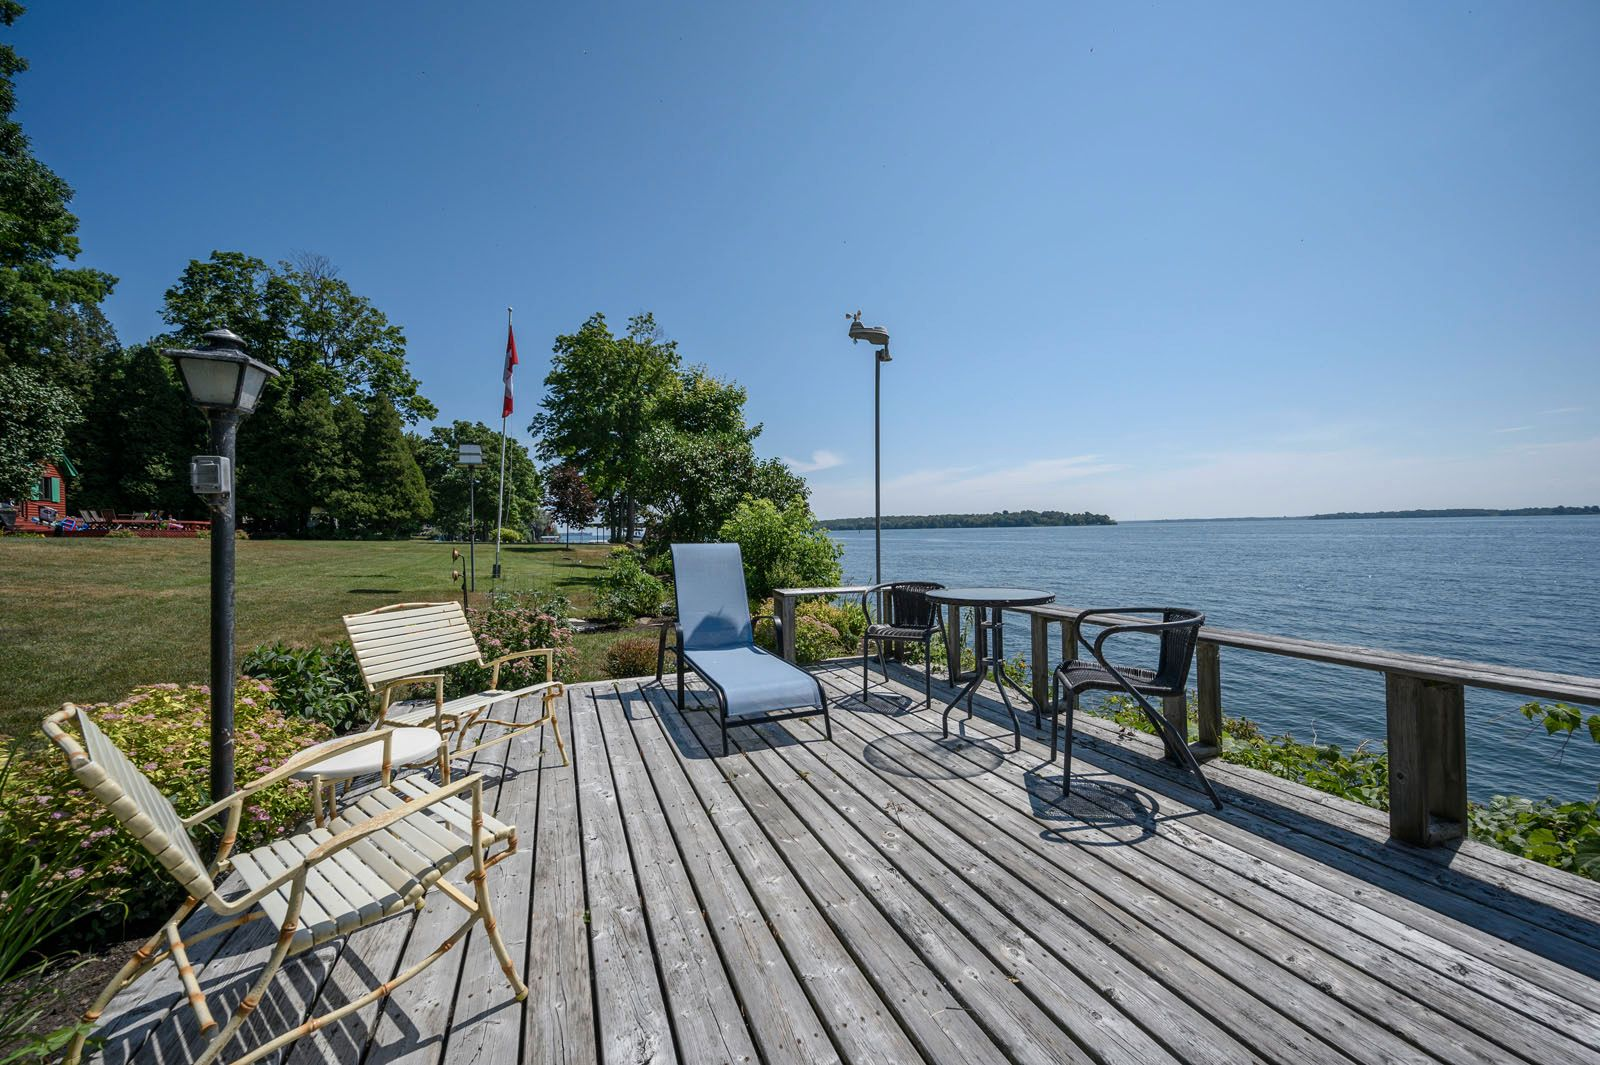 Photo 4: Photos: 54 Hamilton Island Road in Summerstown: Summerstown, ON Recreational for sale (St.Lawrence River)